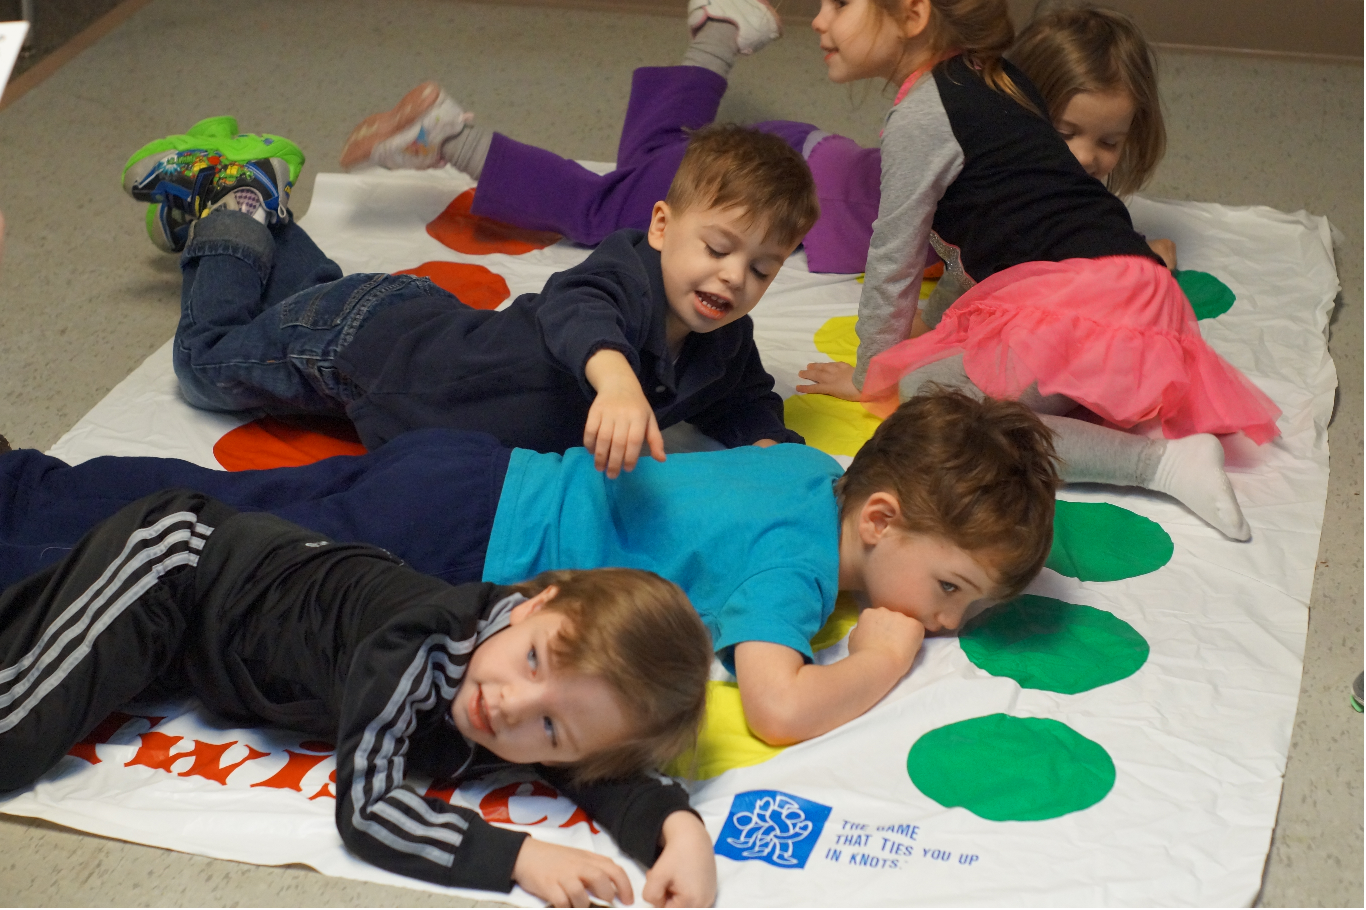 Children playing Twister